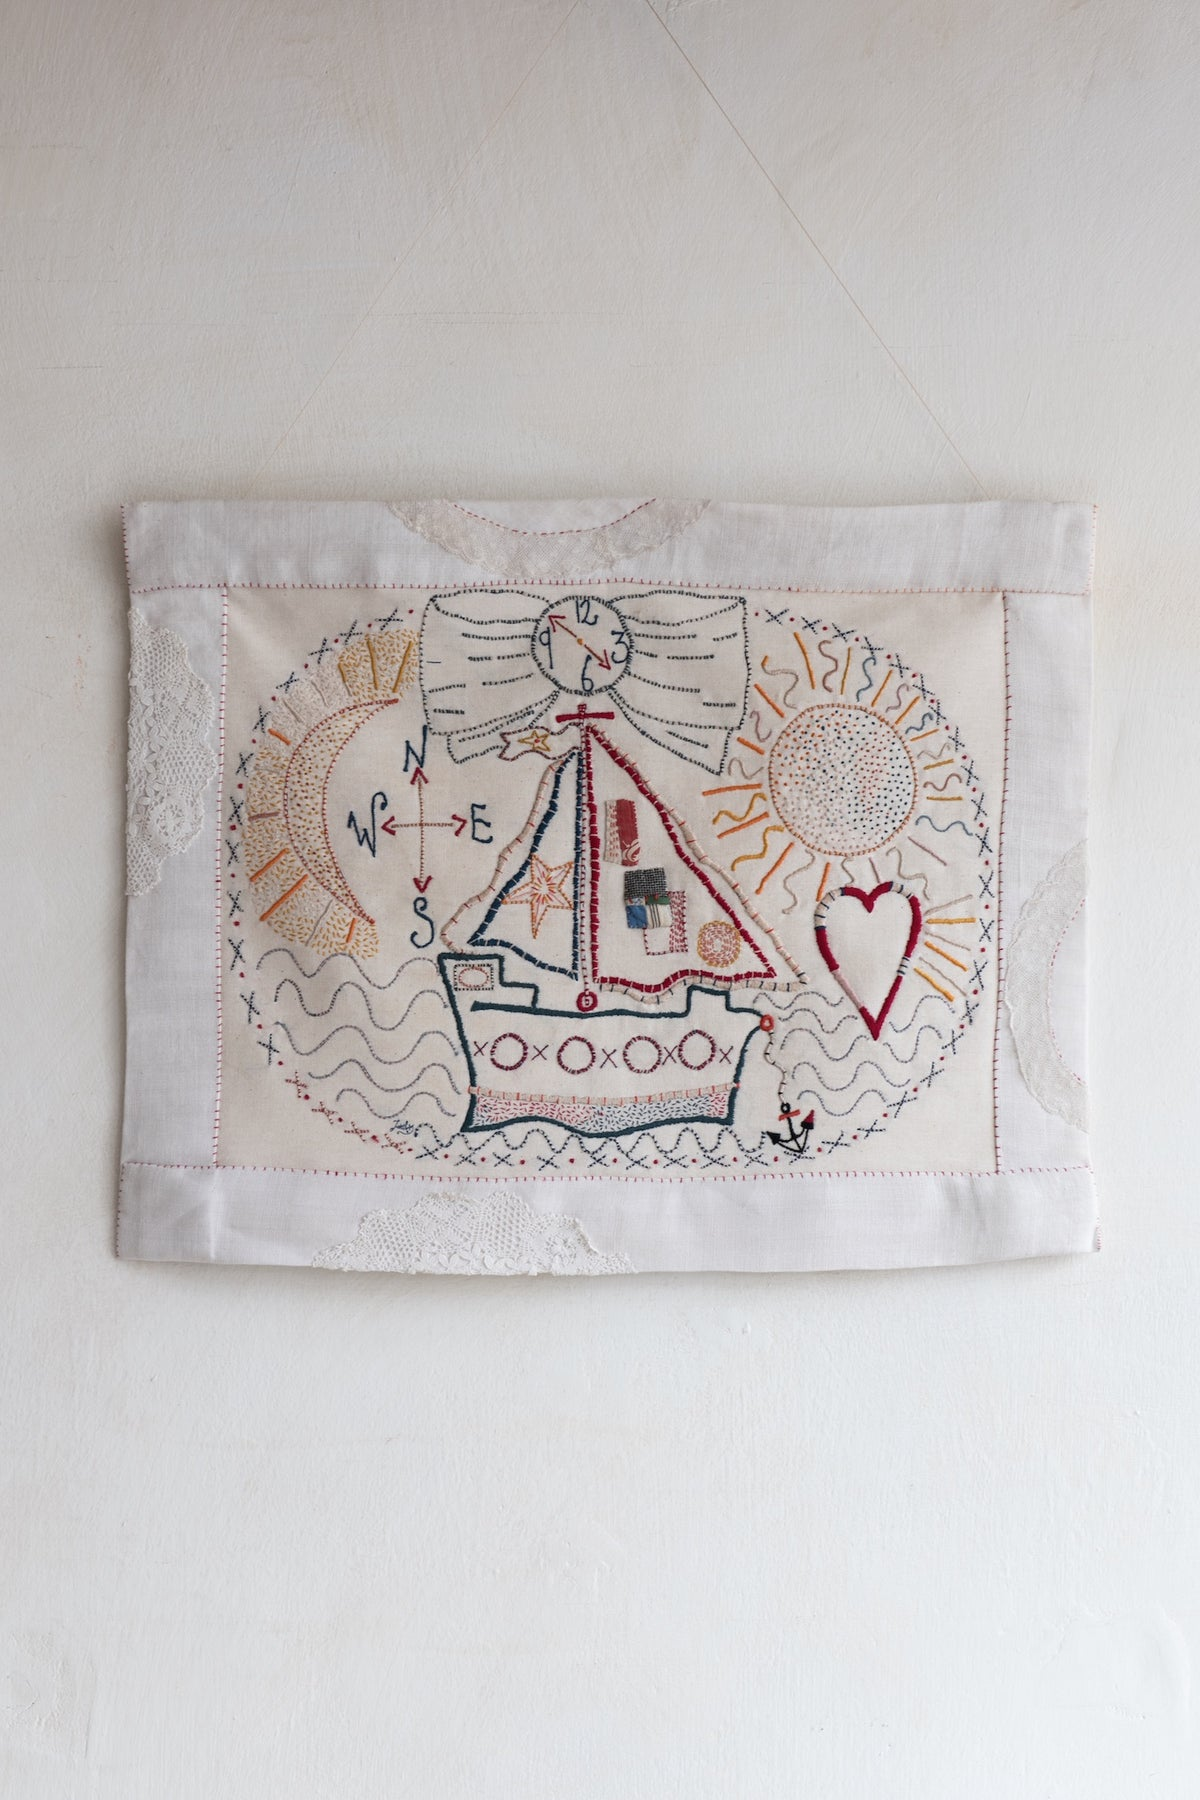 Image of 'Le Voyage' large embroidery template